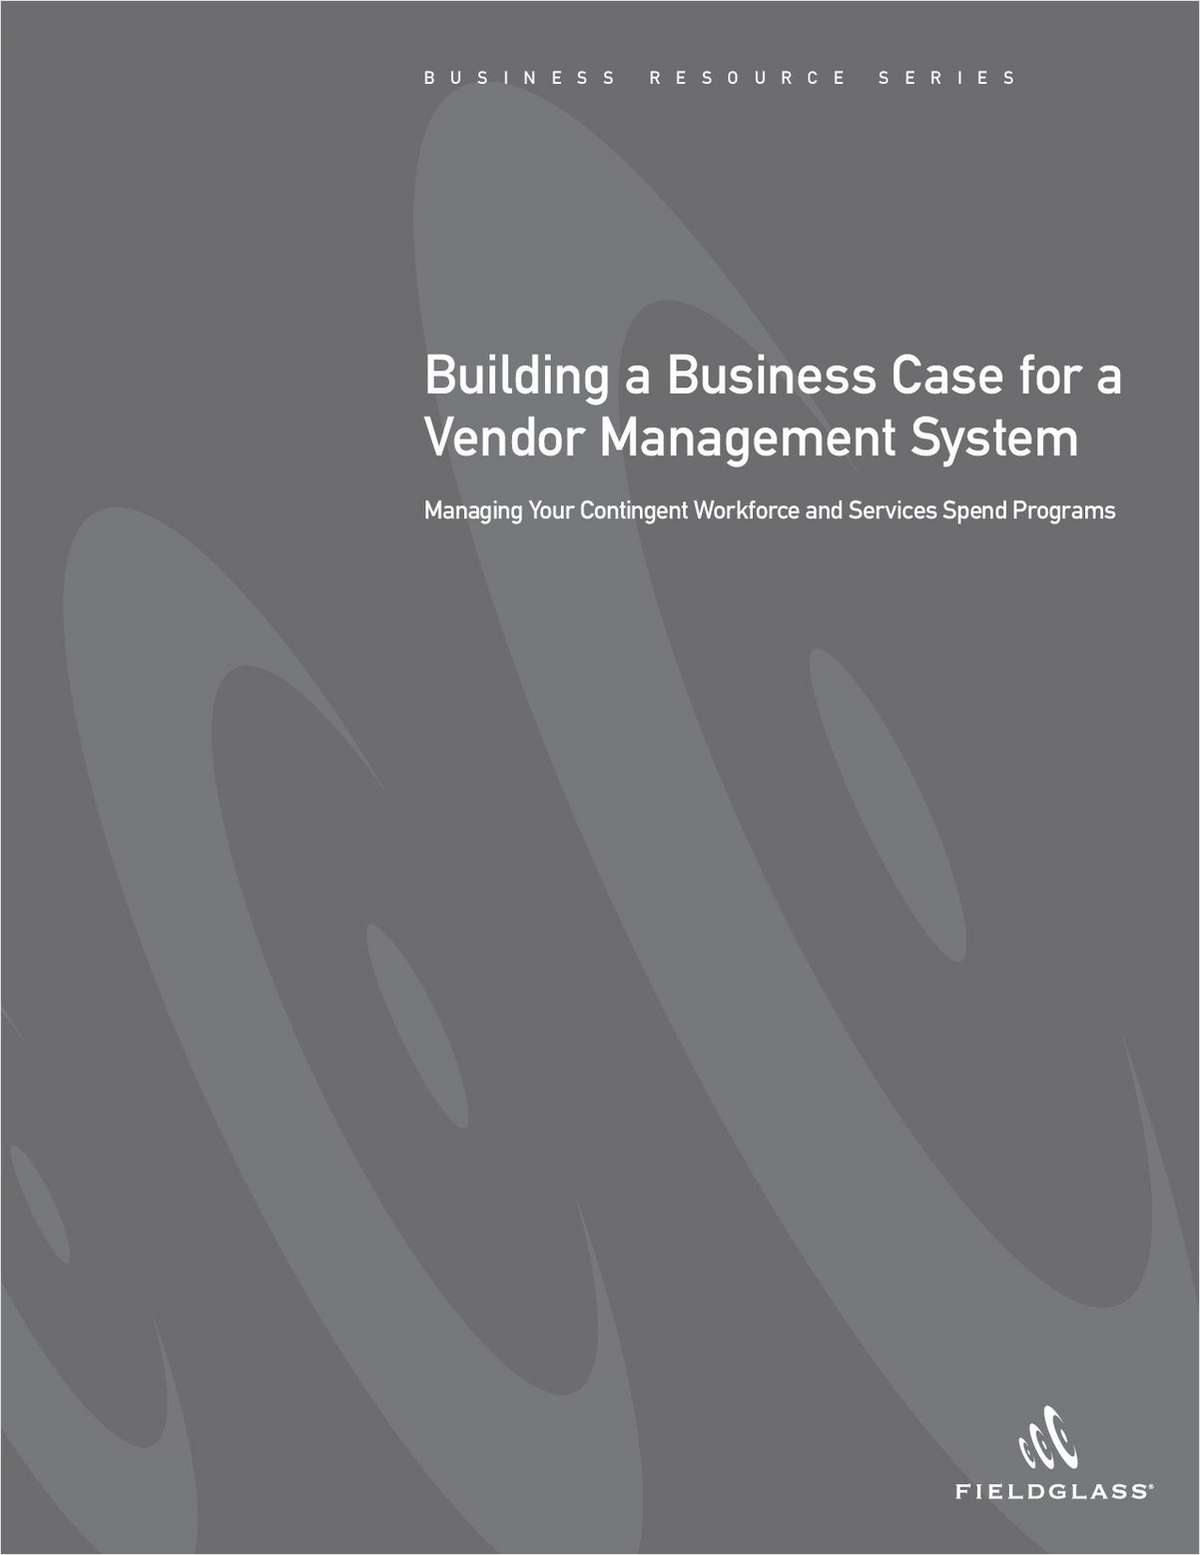 Building a Business Case for a Vendor Management System